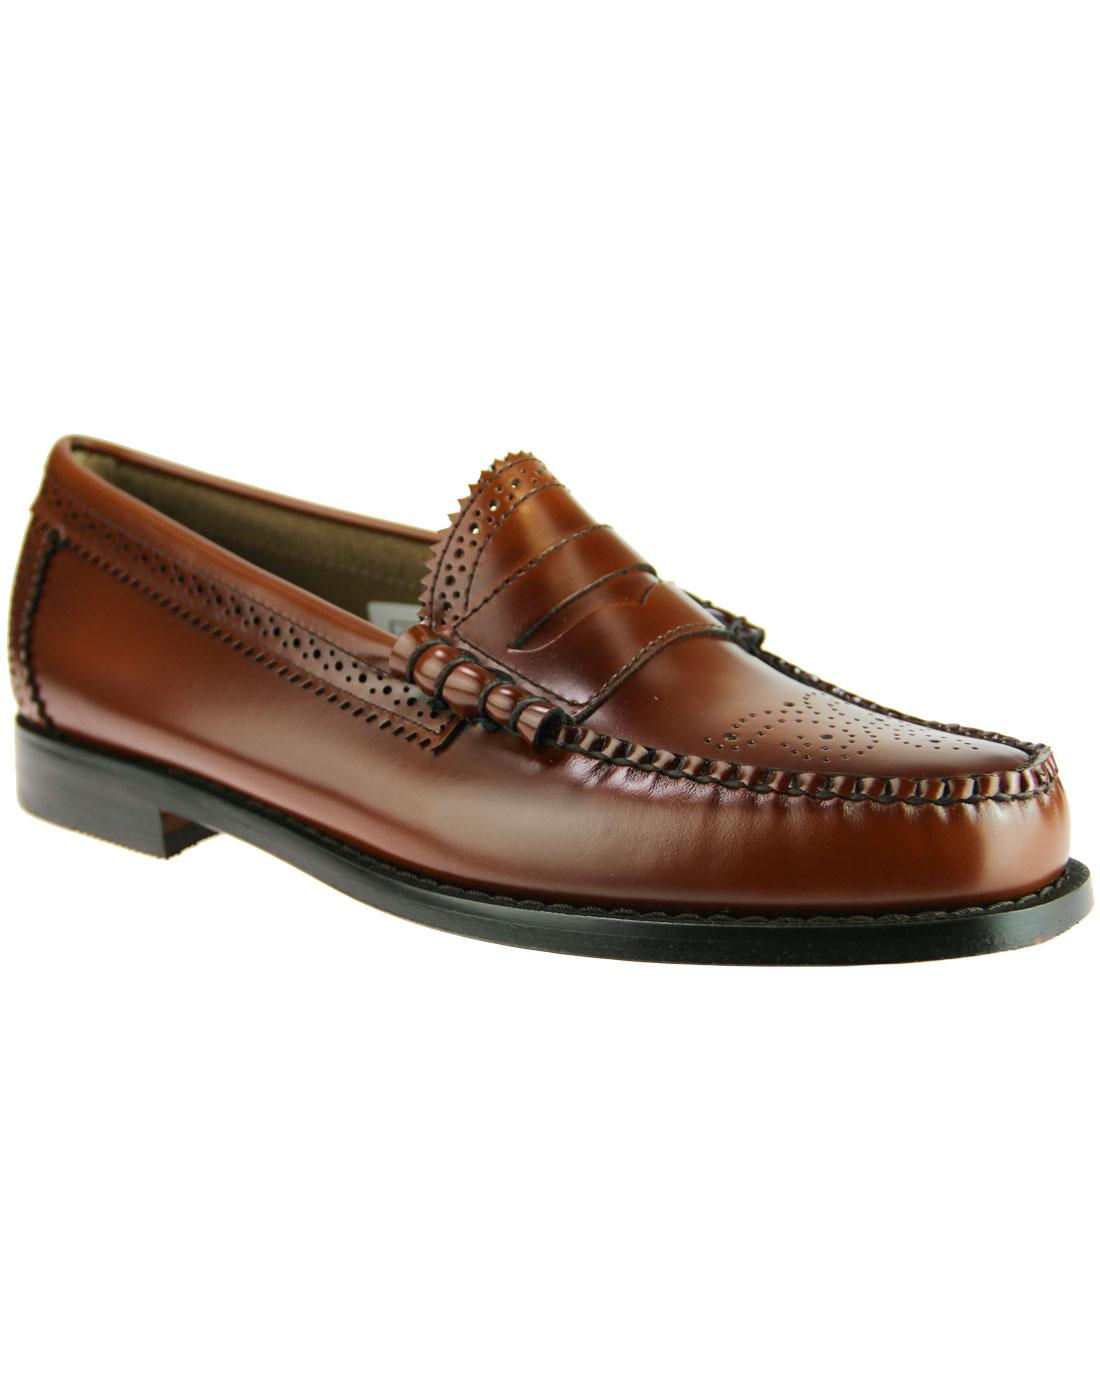 Larson Brogue BASS WEEJUNS Mod Penny Loafers (MB)